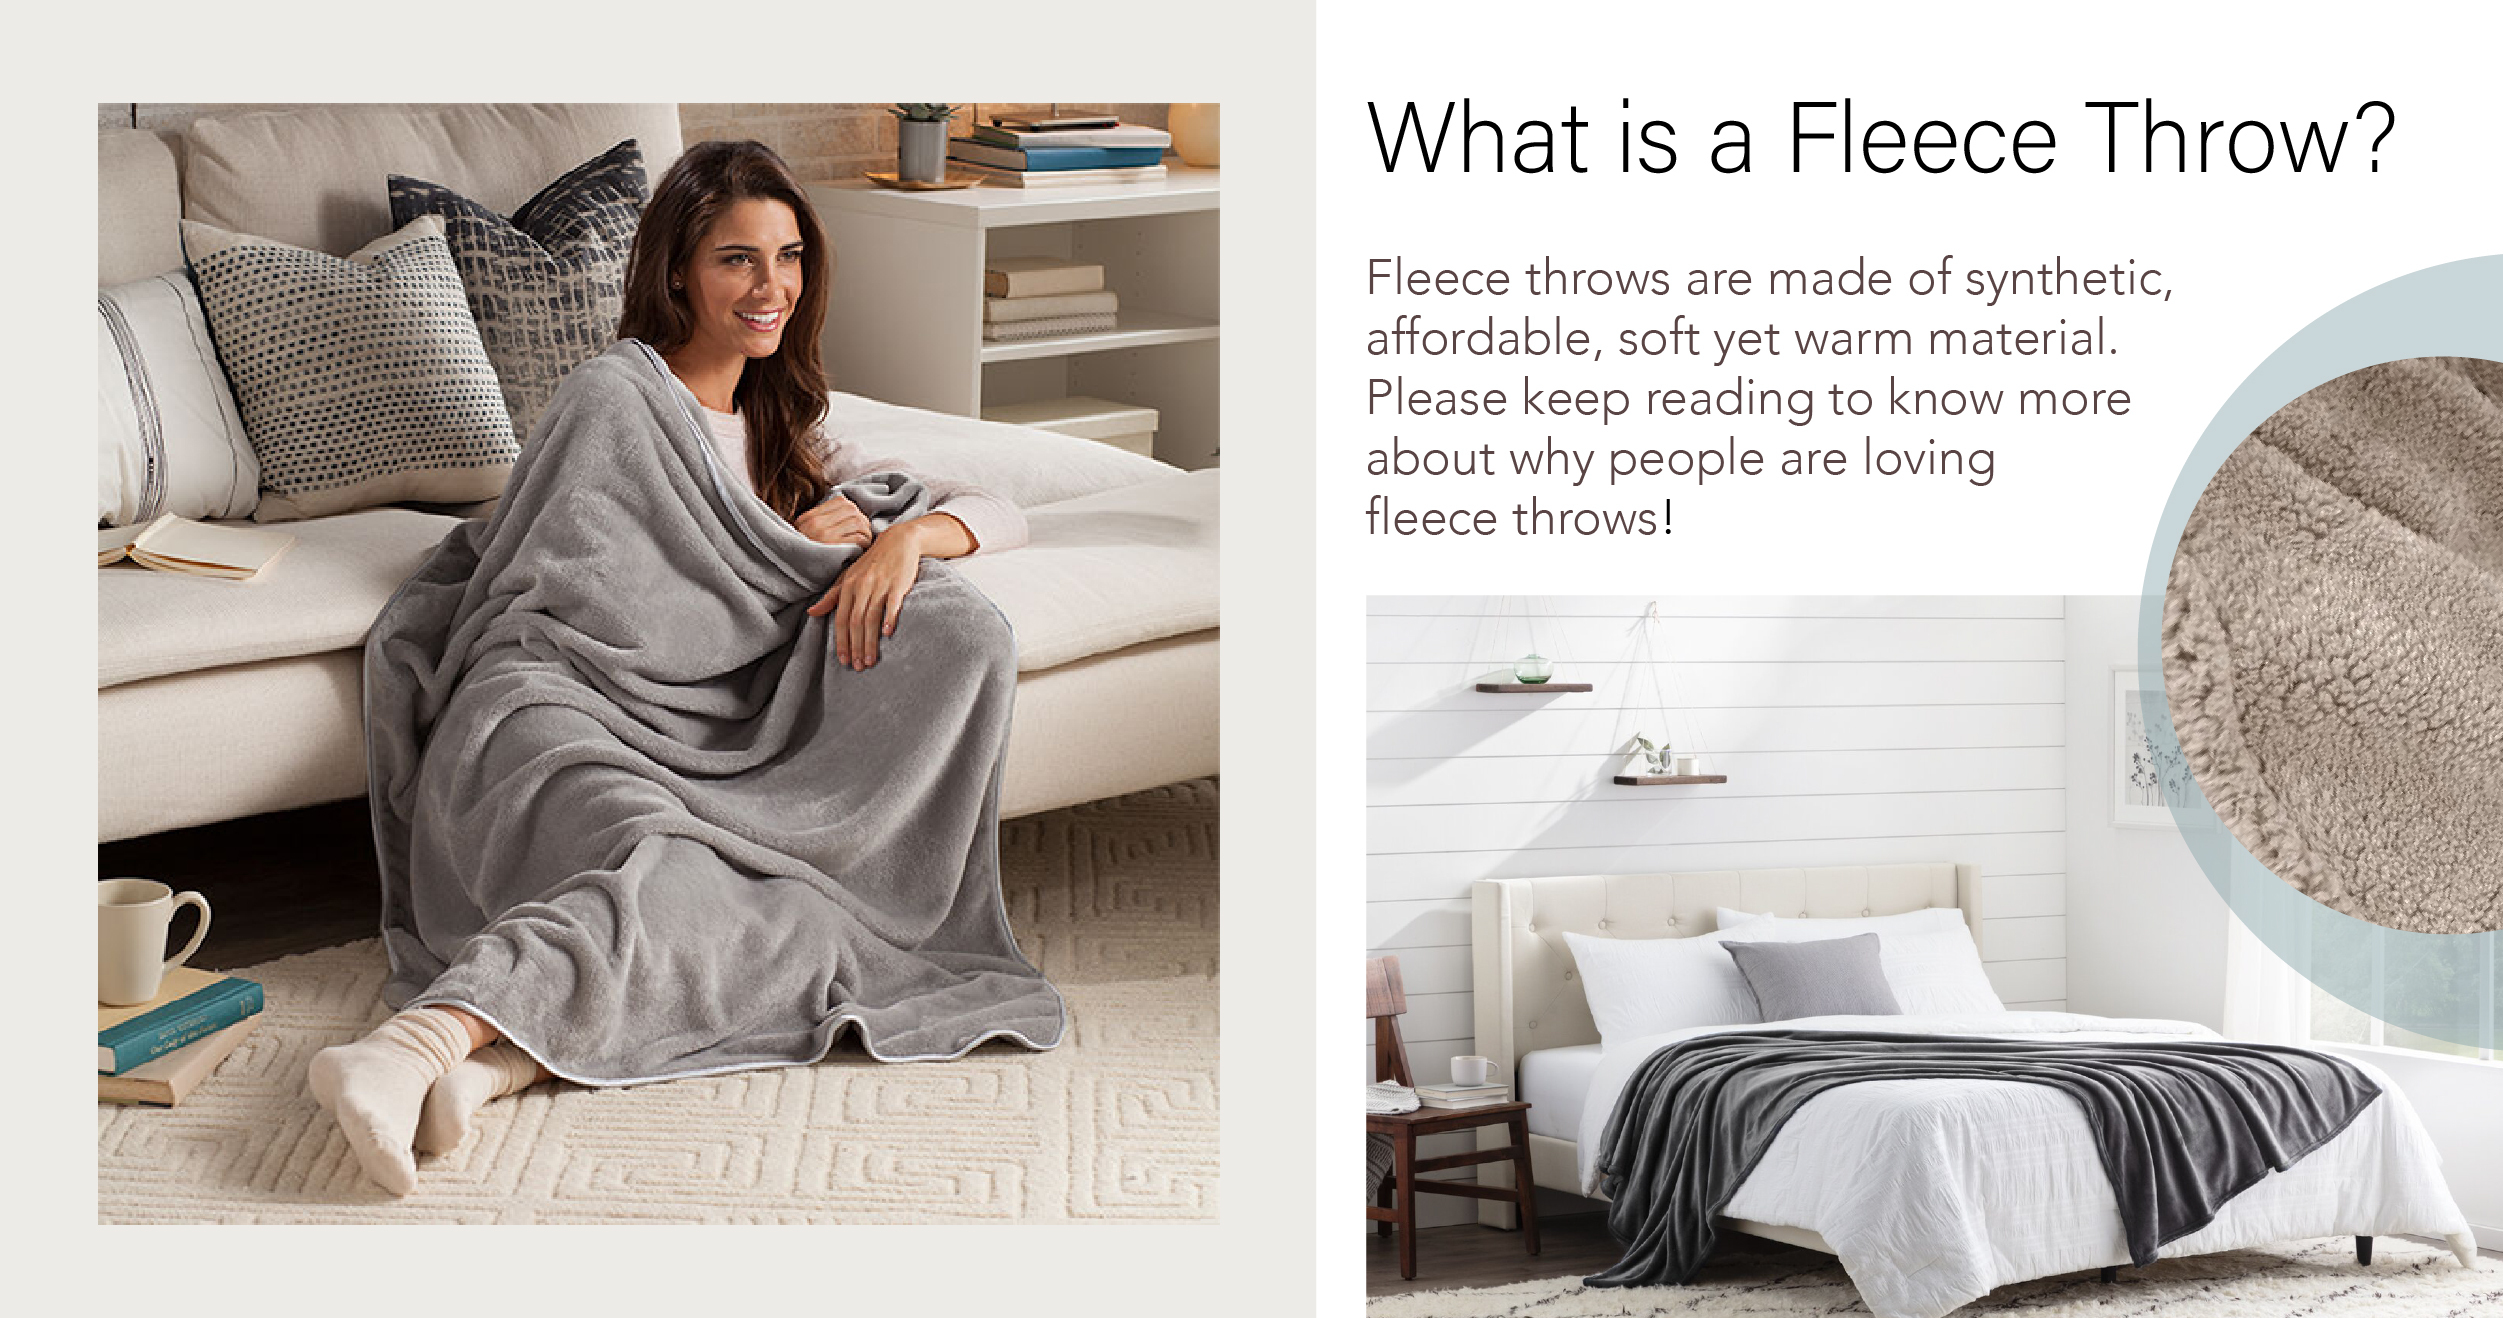 What is a Fleece Throw?